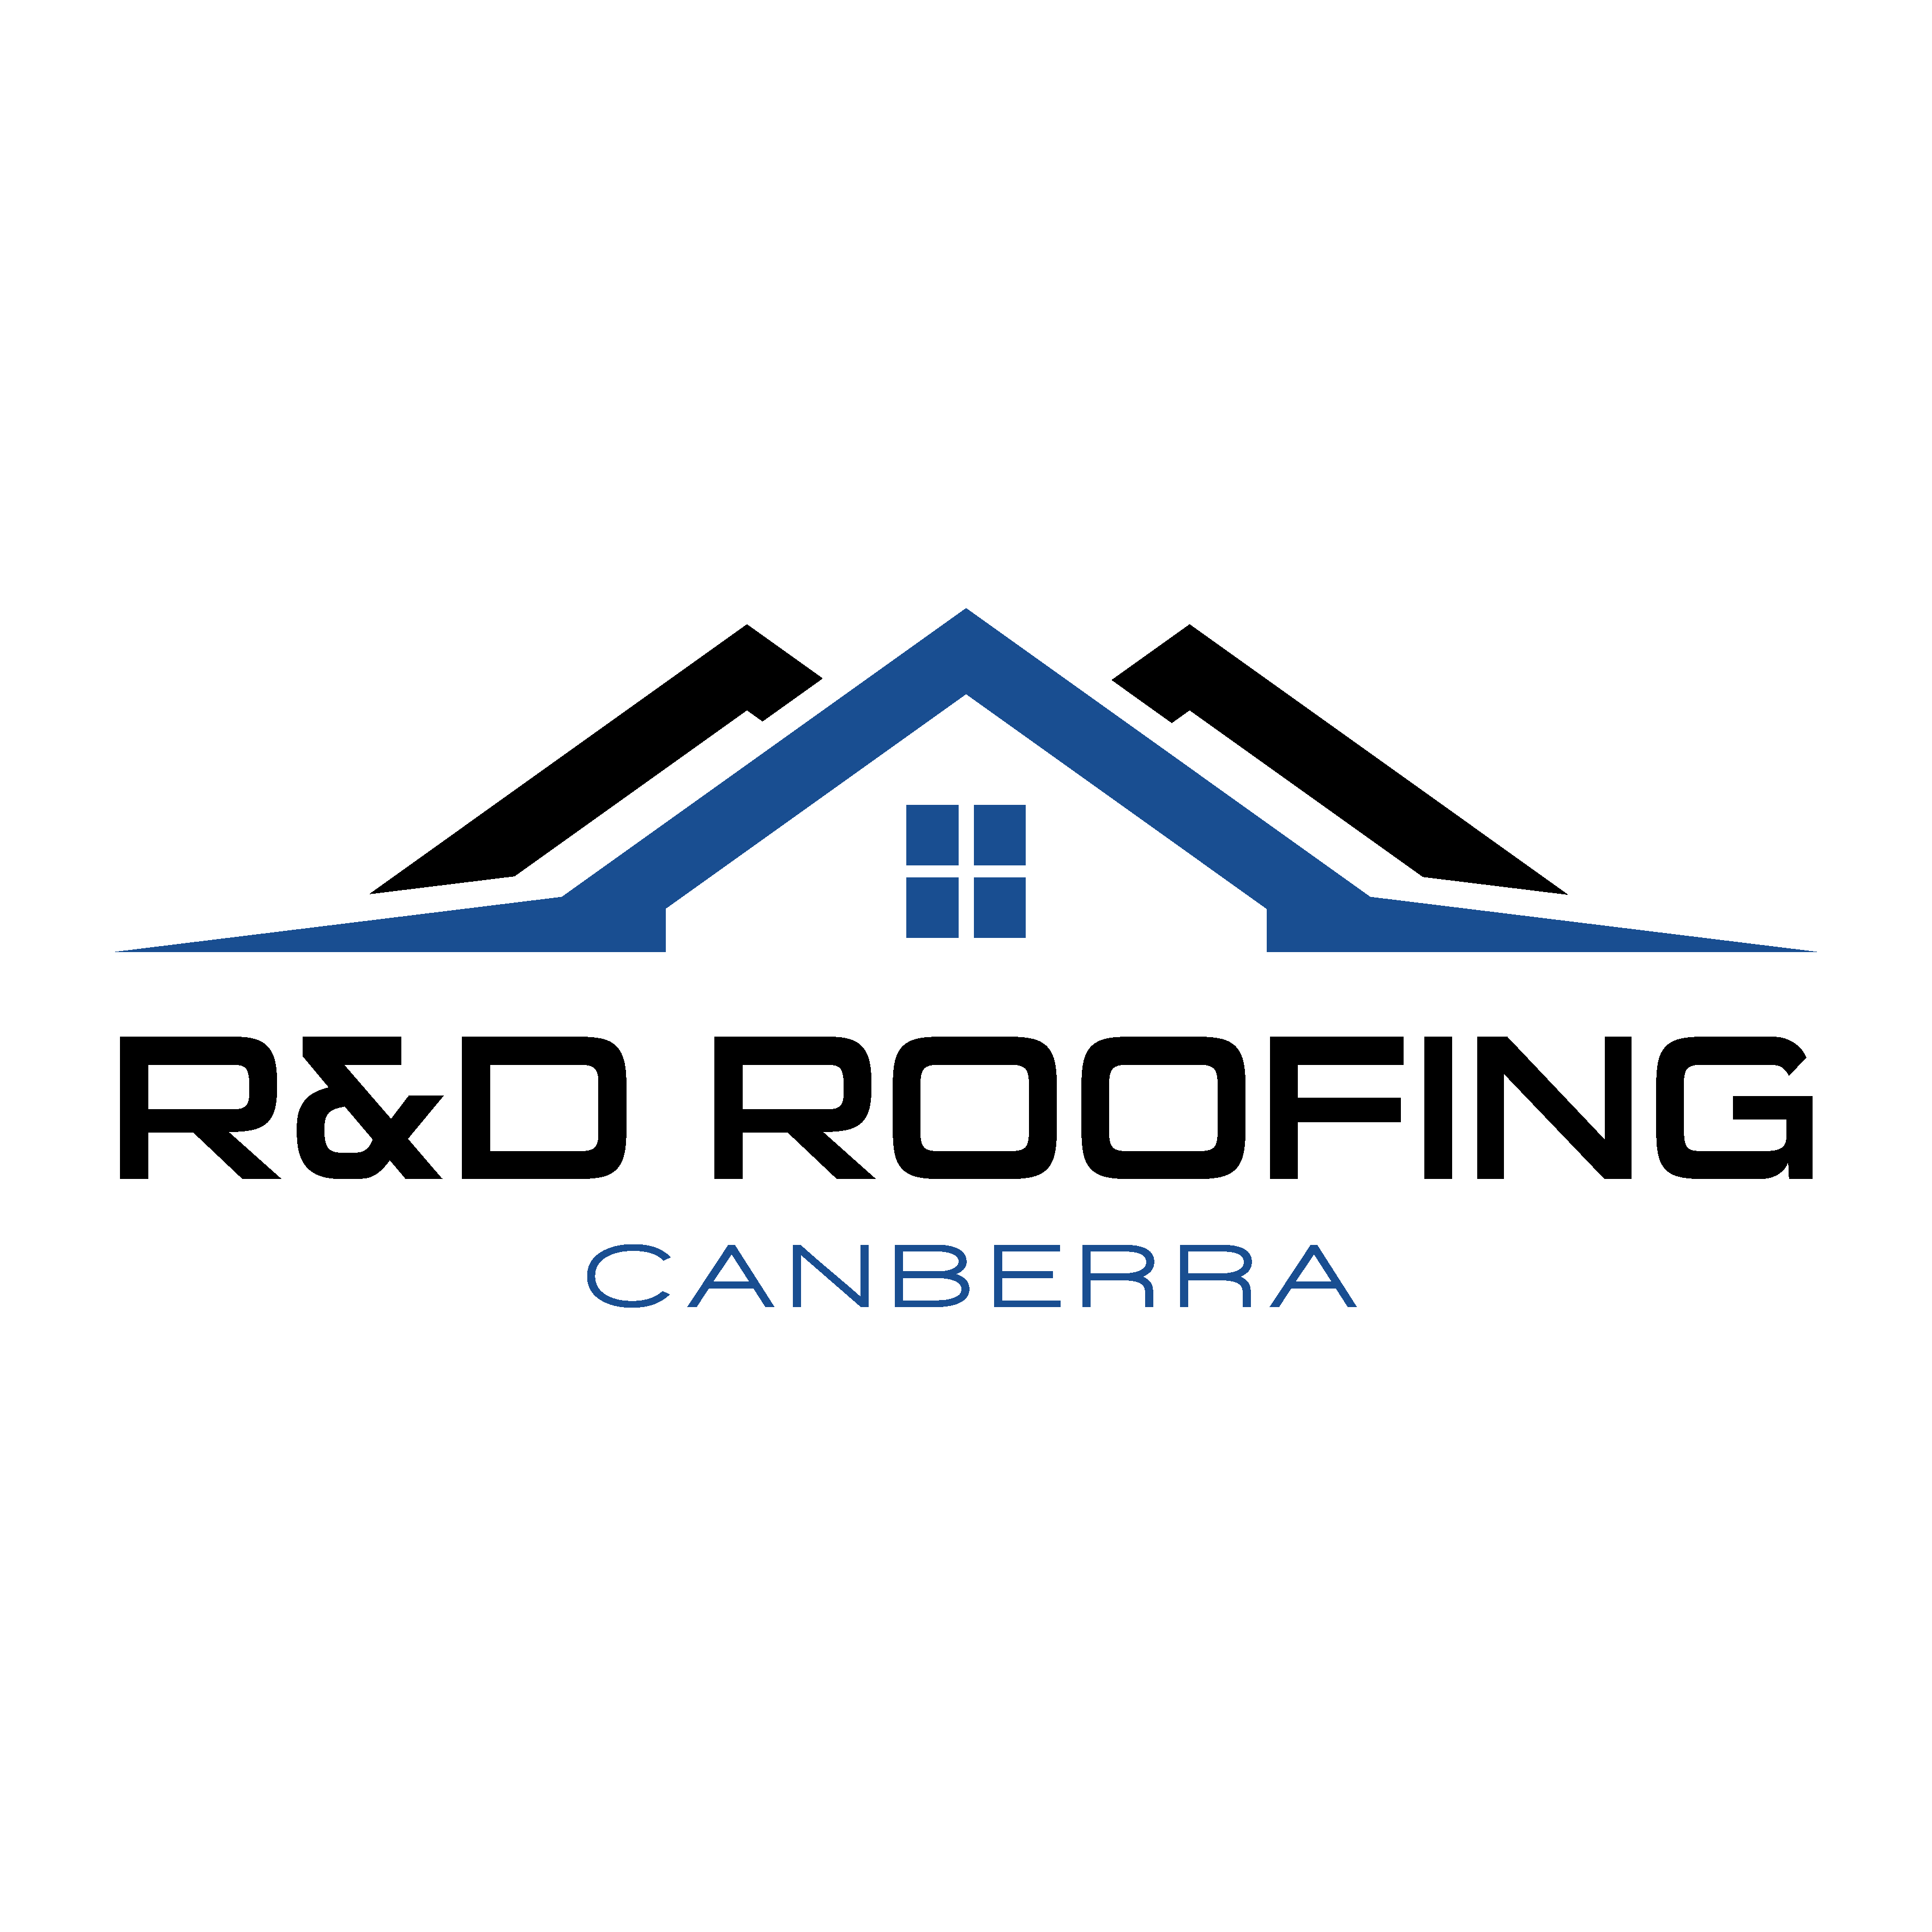 R&D Roofing